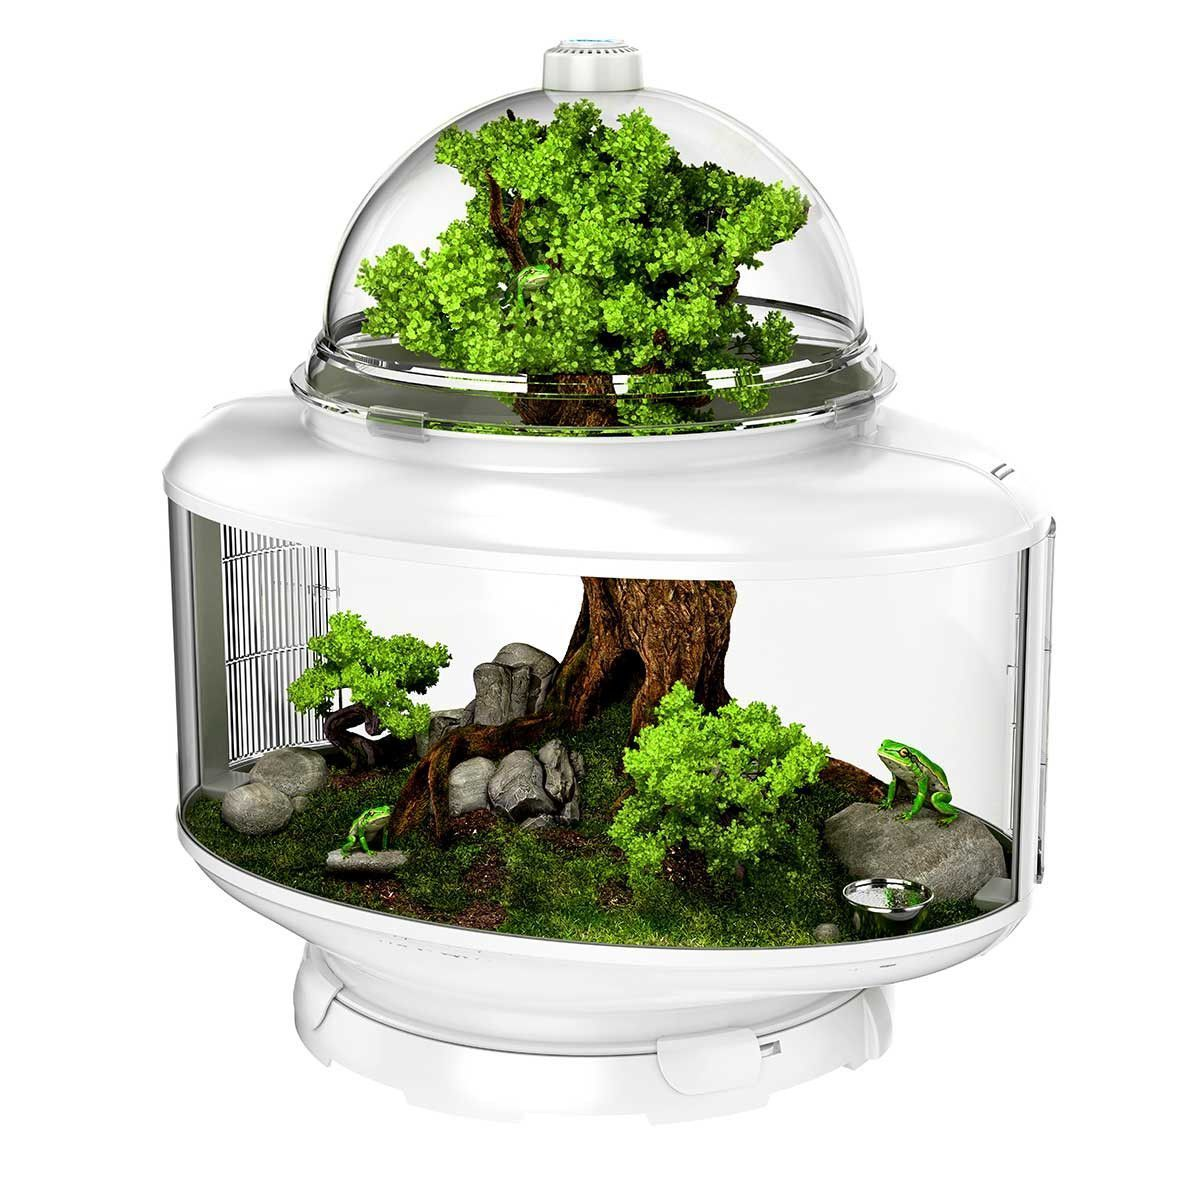 The biobubble terrarium is a groundbreaking habitat that introduces